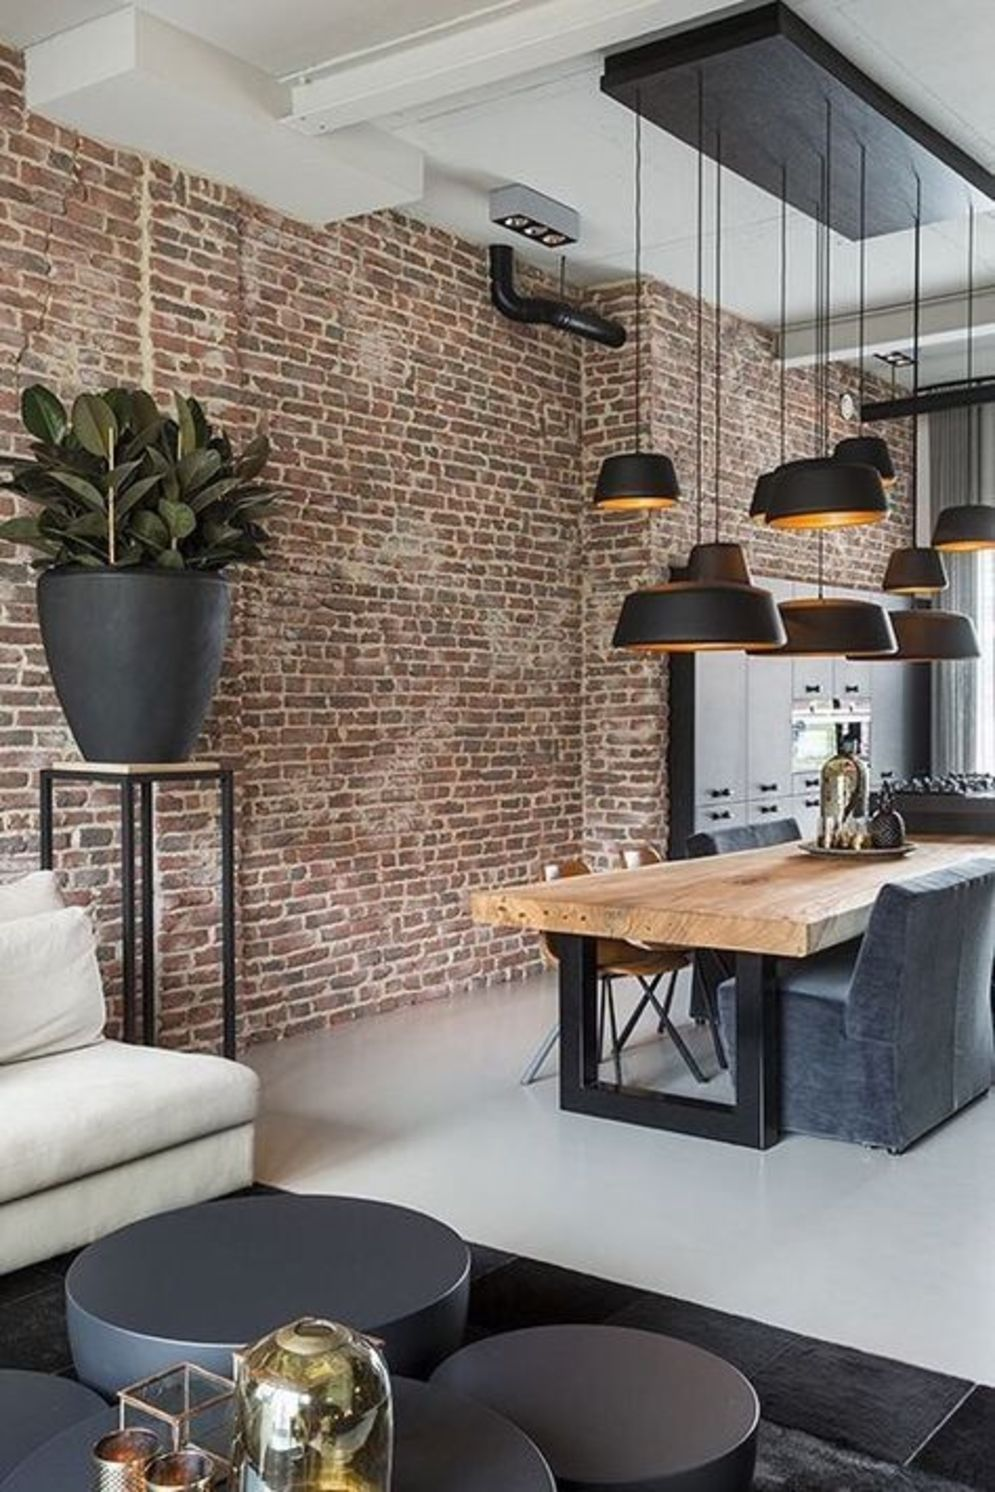 Wonderful interior statement brick wall improving interior display with modern rustic combination Image 37